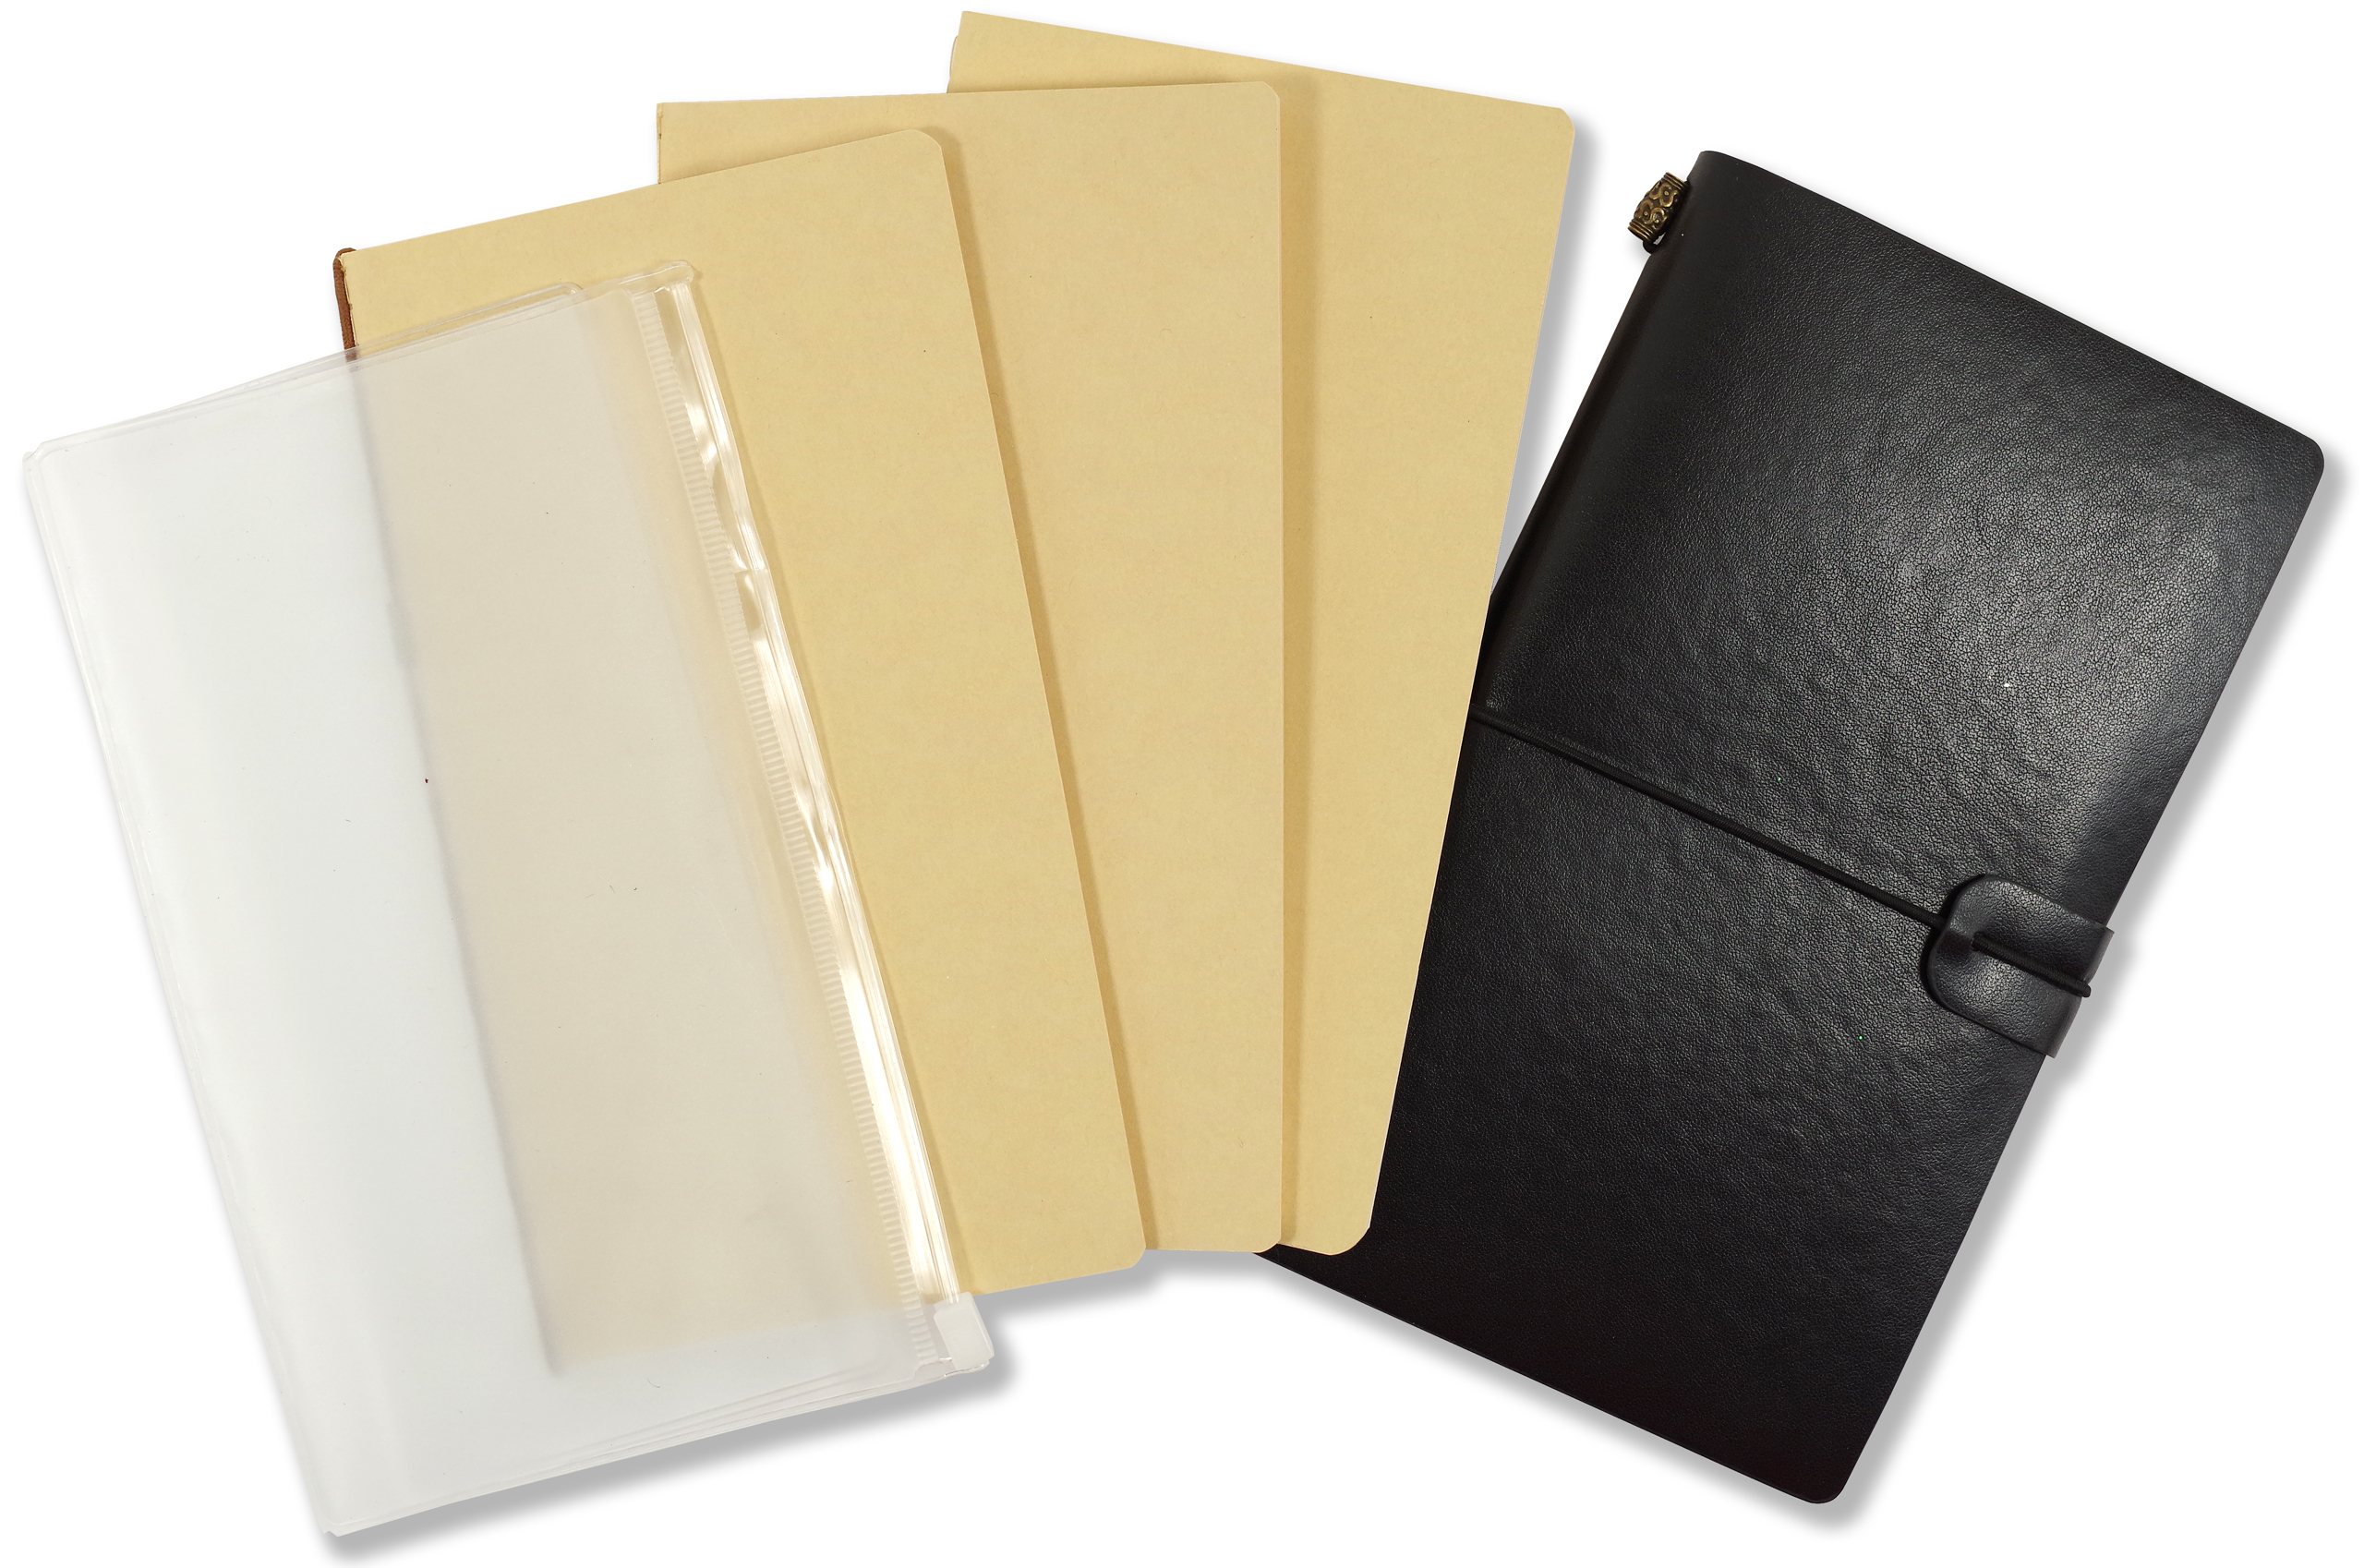 Inserts included with Voyager Notebook